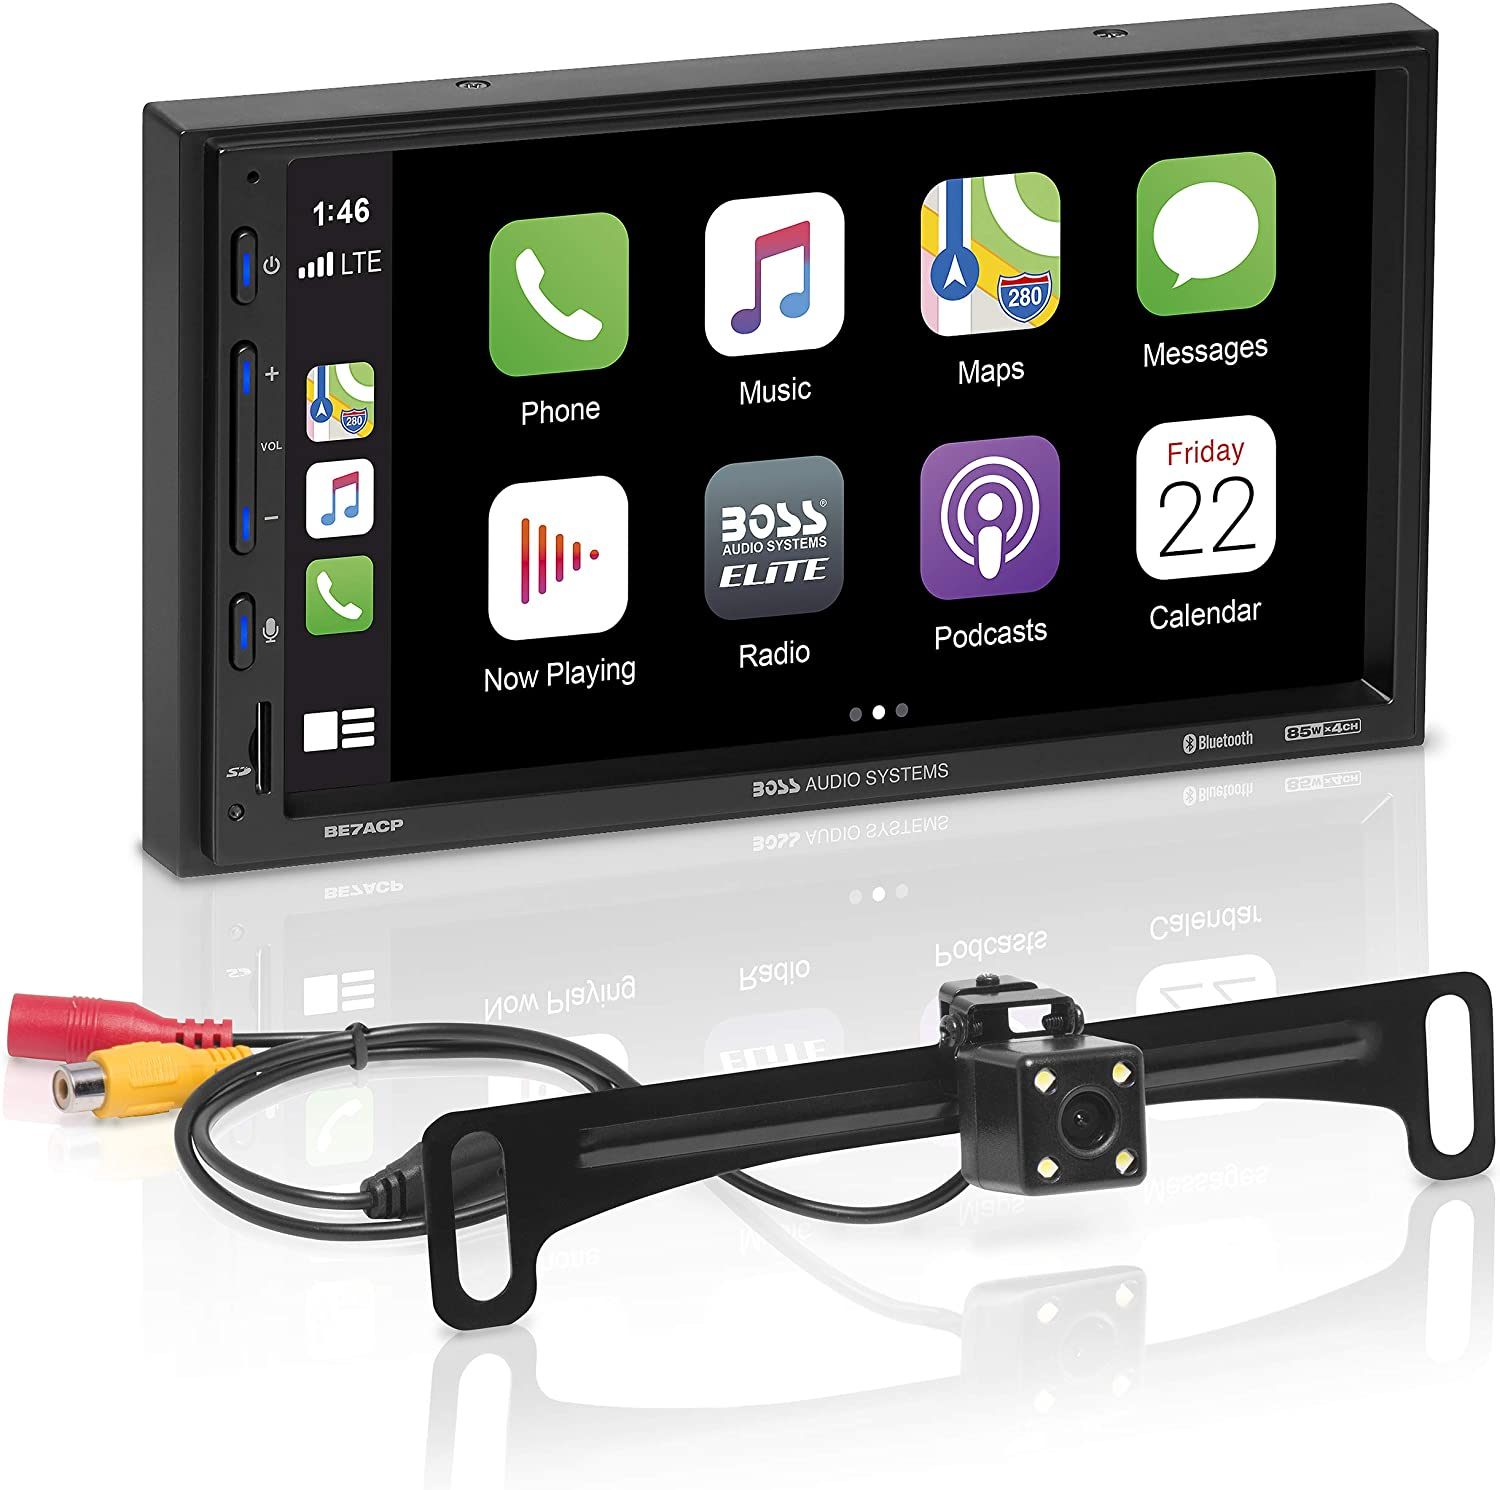 BOSS Audio Systems Elite BE7ACP-C Car Multimedia Player with Apple CarPlay Android Auto - 7 Inch Capacitive Touchscreen, Double Din, Bluetooth, No CD/DVD, USB, SD, AV In, AM/FM, Backup Camera Included